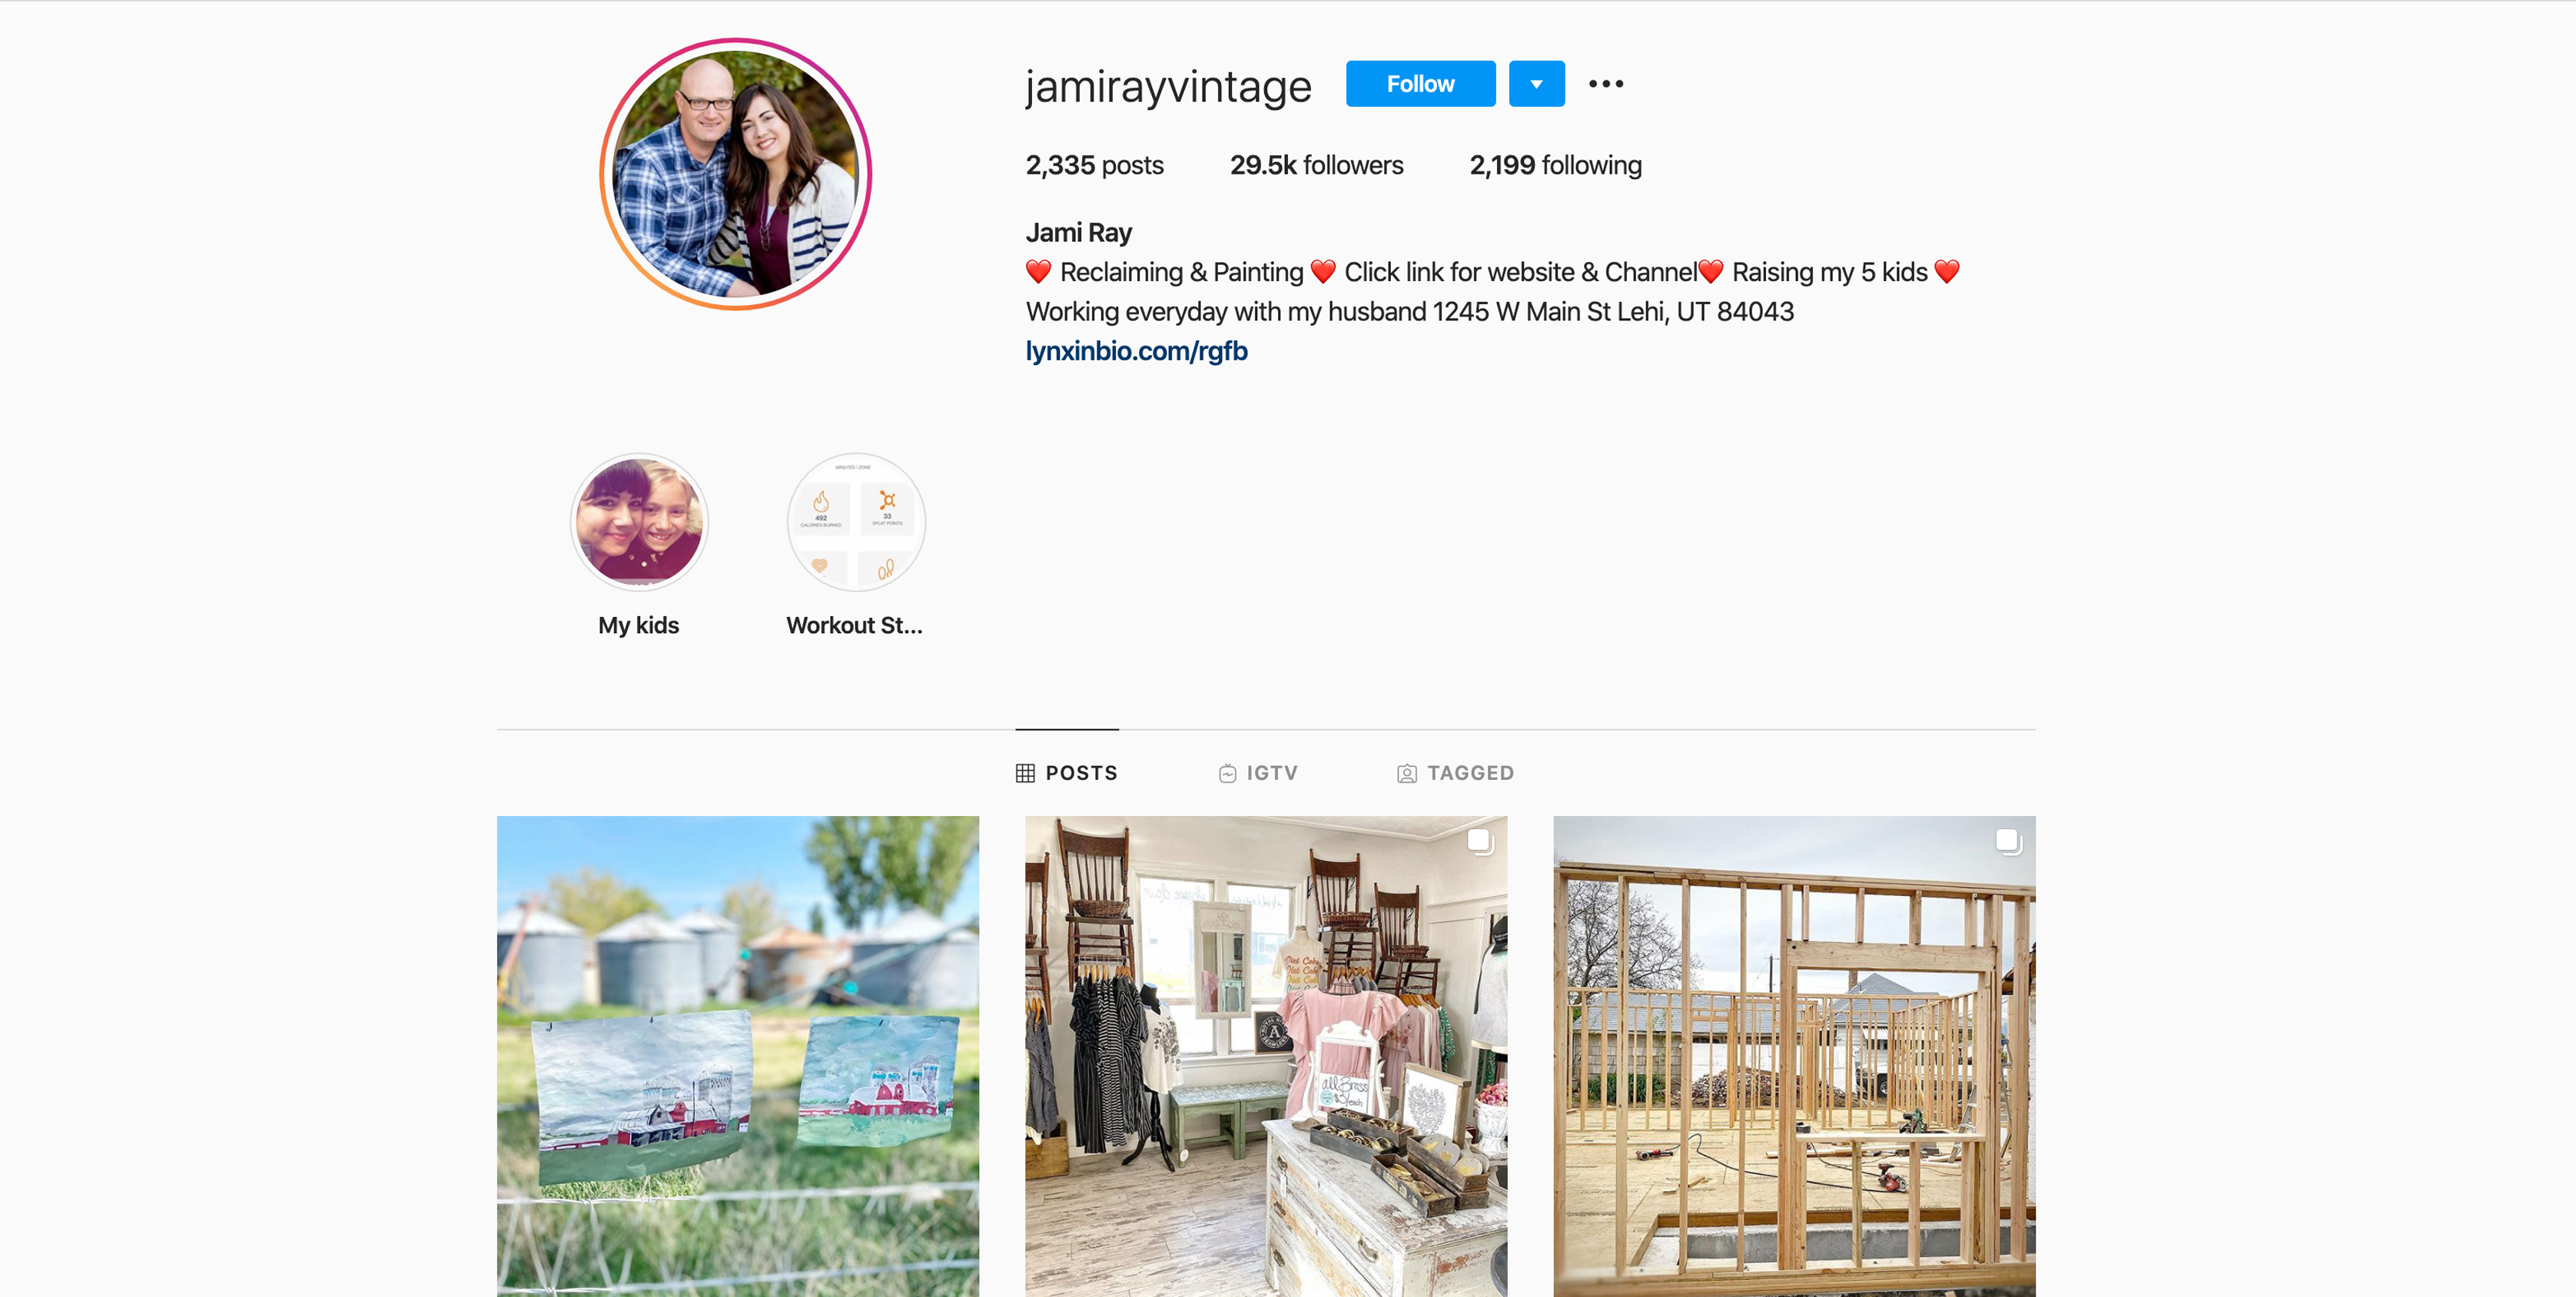 jamirayvintage home improvement influencer